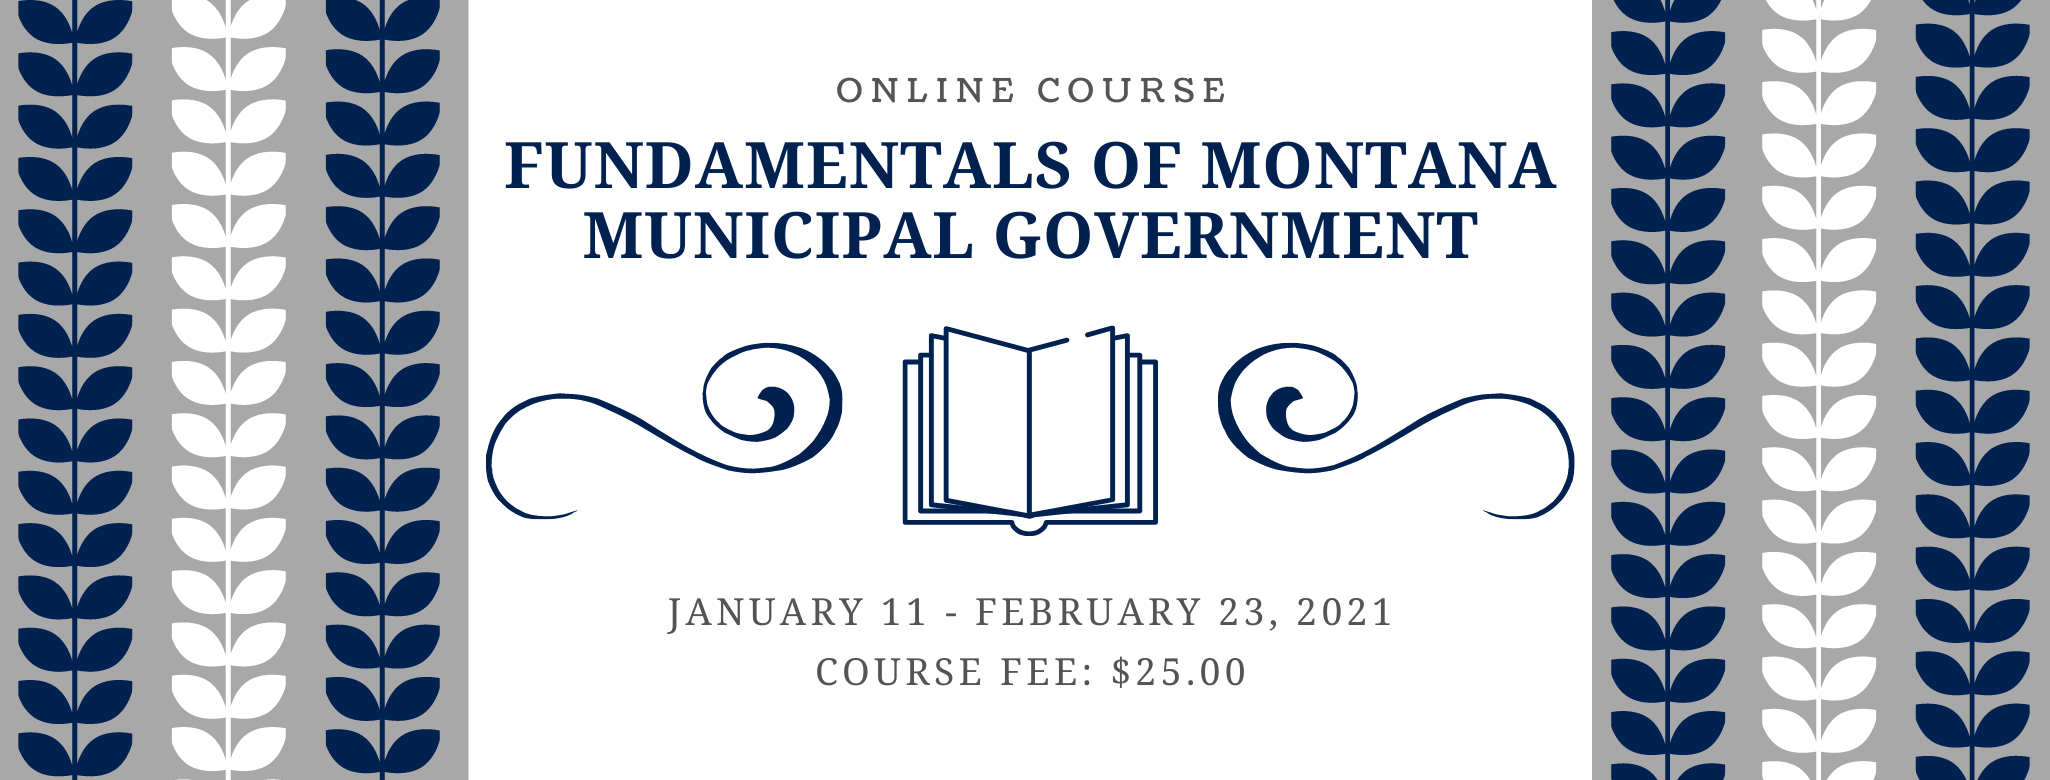 Fundamentals of Montana Municipal Government Online Course banner